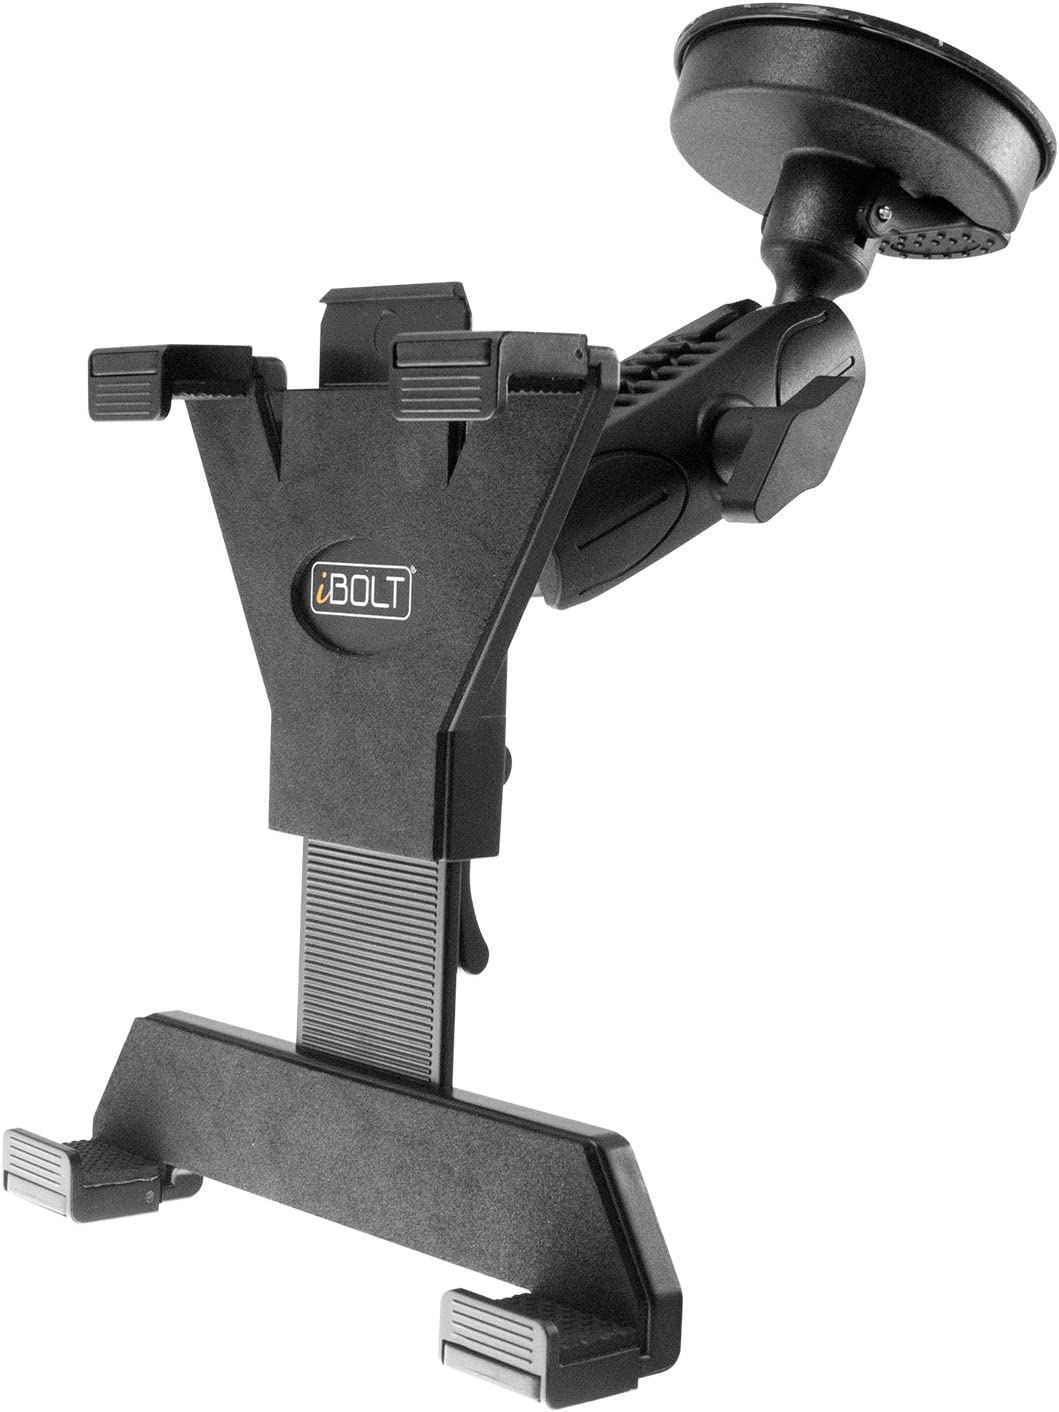 Samsung Galaxy Tab Dashboard Compatible with All 7-10 Tablets: iPad iBOLT Tabdock BizMount -Holder//Mount with Suction Cup Base- for Your Windshield or Desk Google Nexus